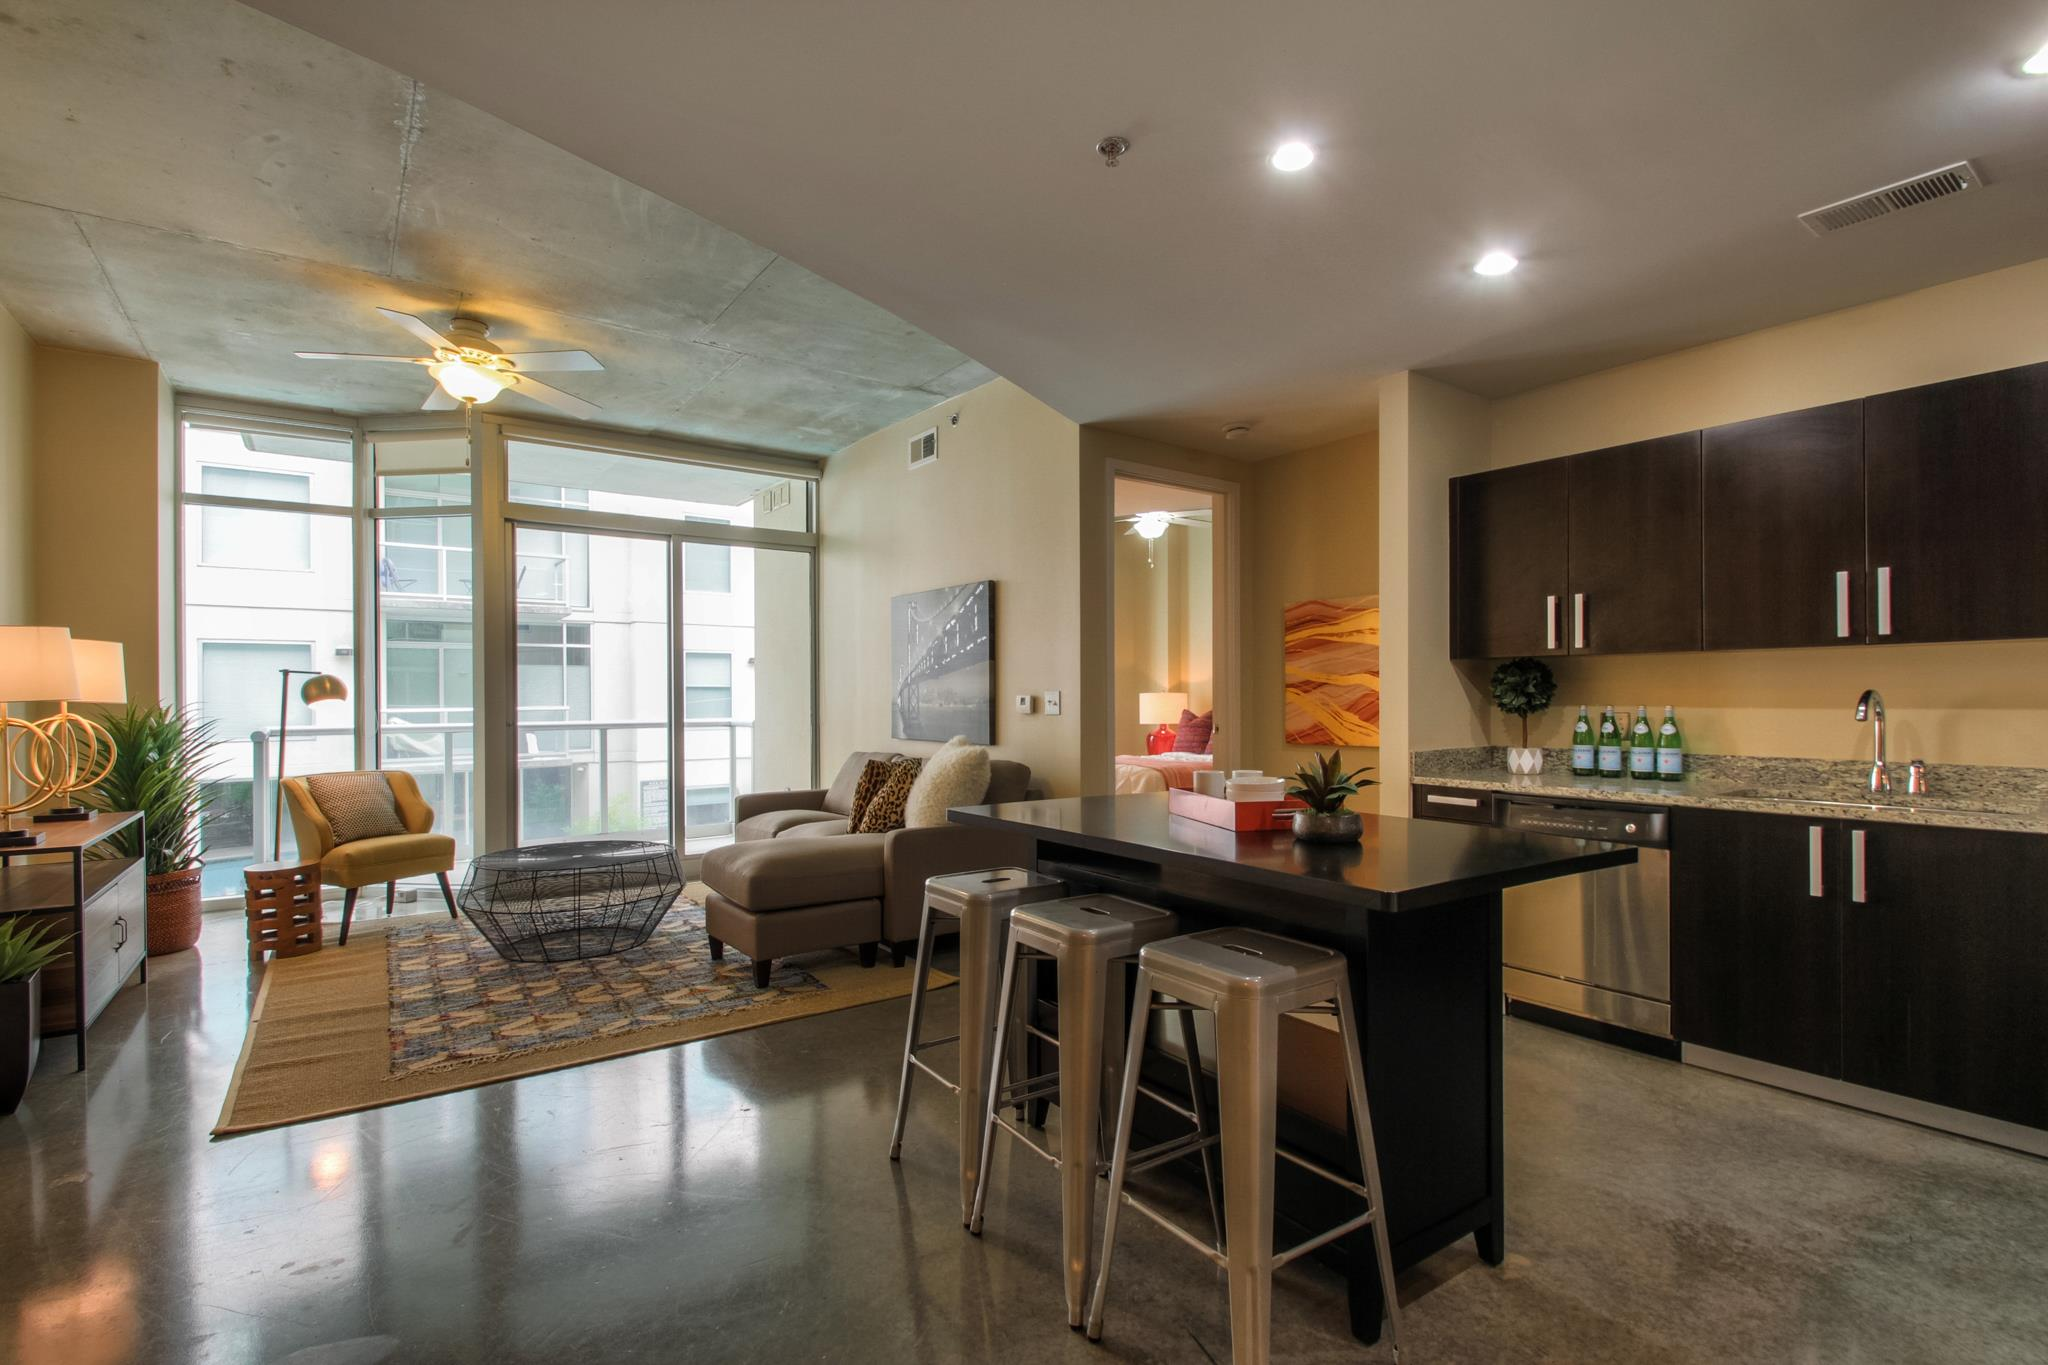 Photo of 600 12Th Ave S Apt 519  Nashville  TN